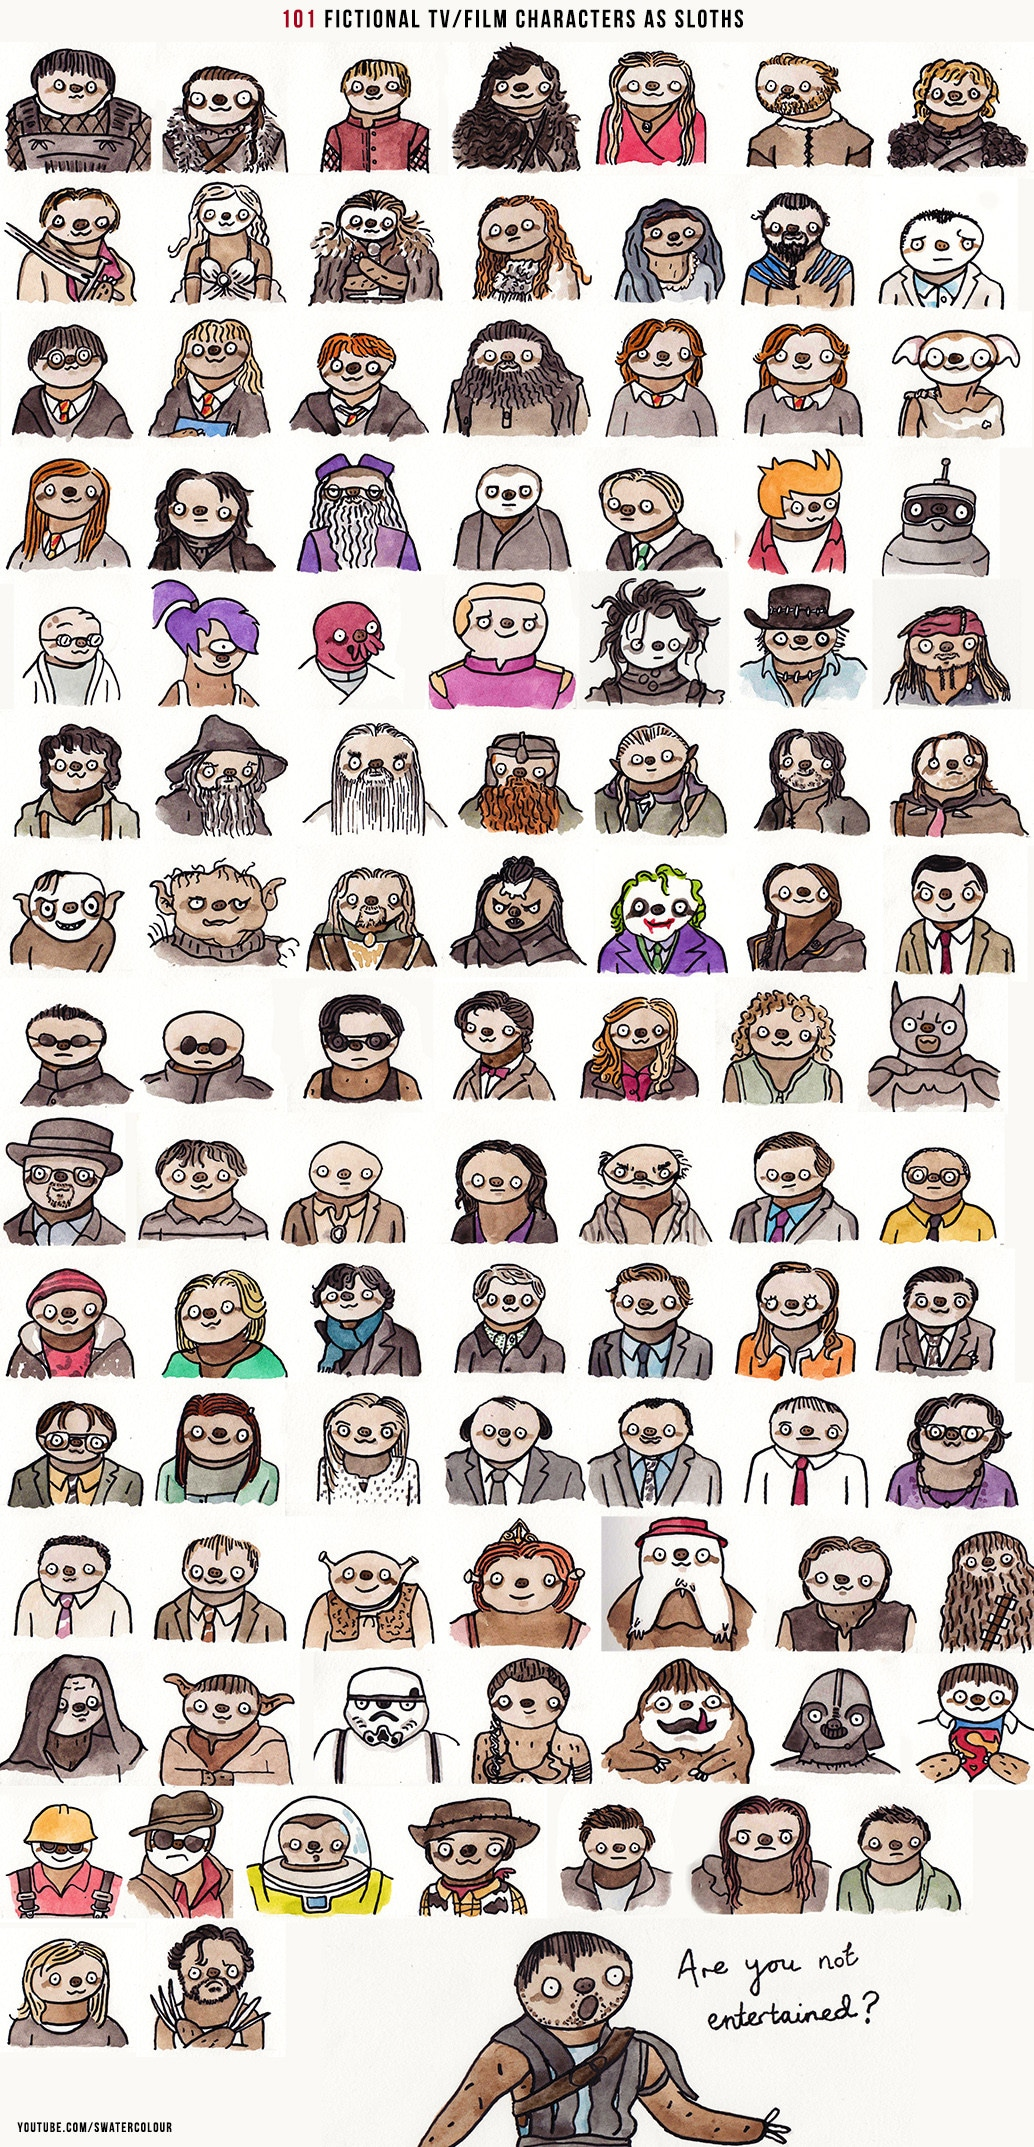 101 Geeky Movie And TV Characters Hand Painted As Mini Sloths [Chart]